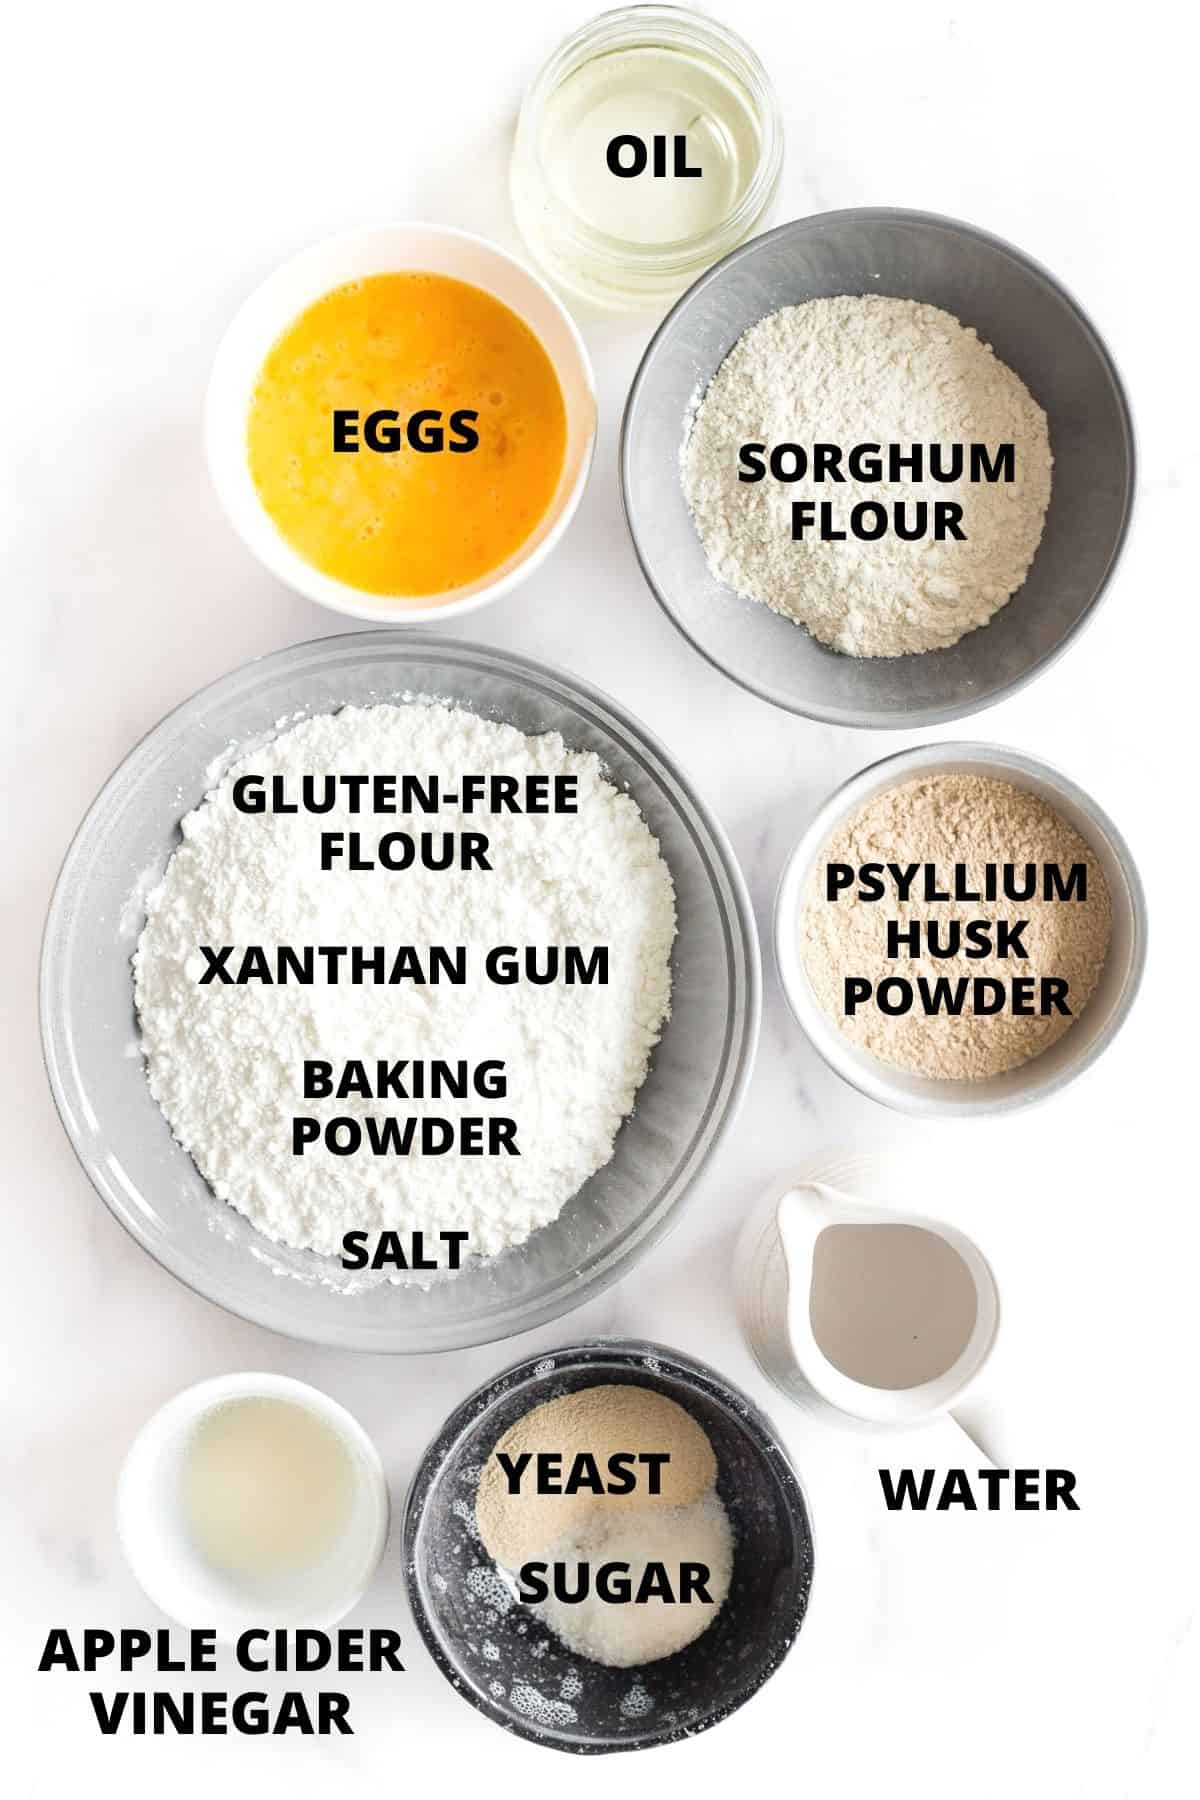 Labeled ingredients for making sorghum bread laid out on a marble board.